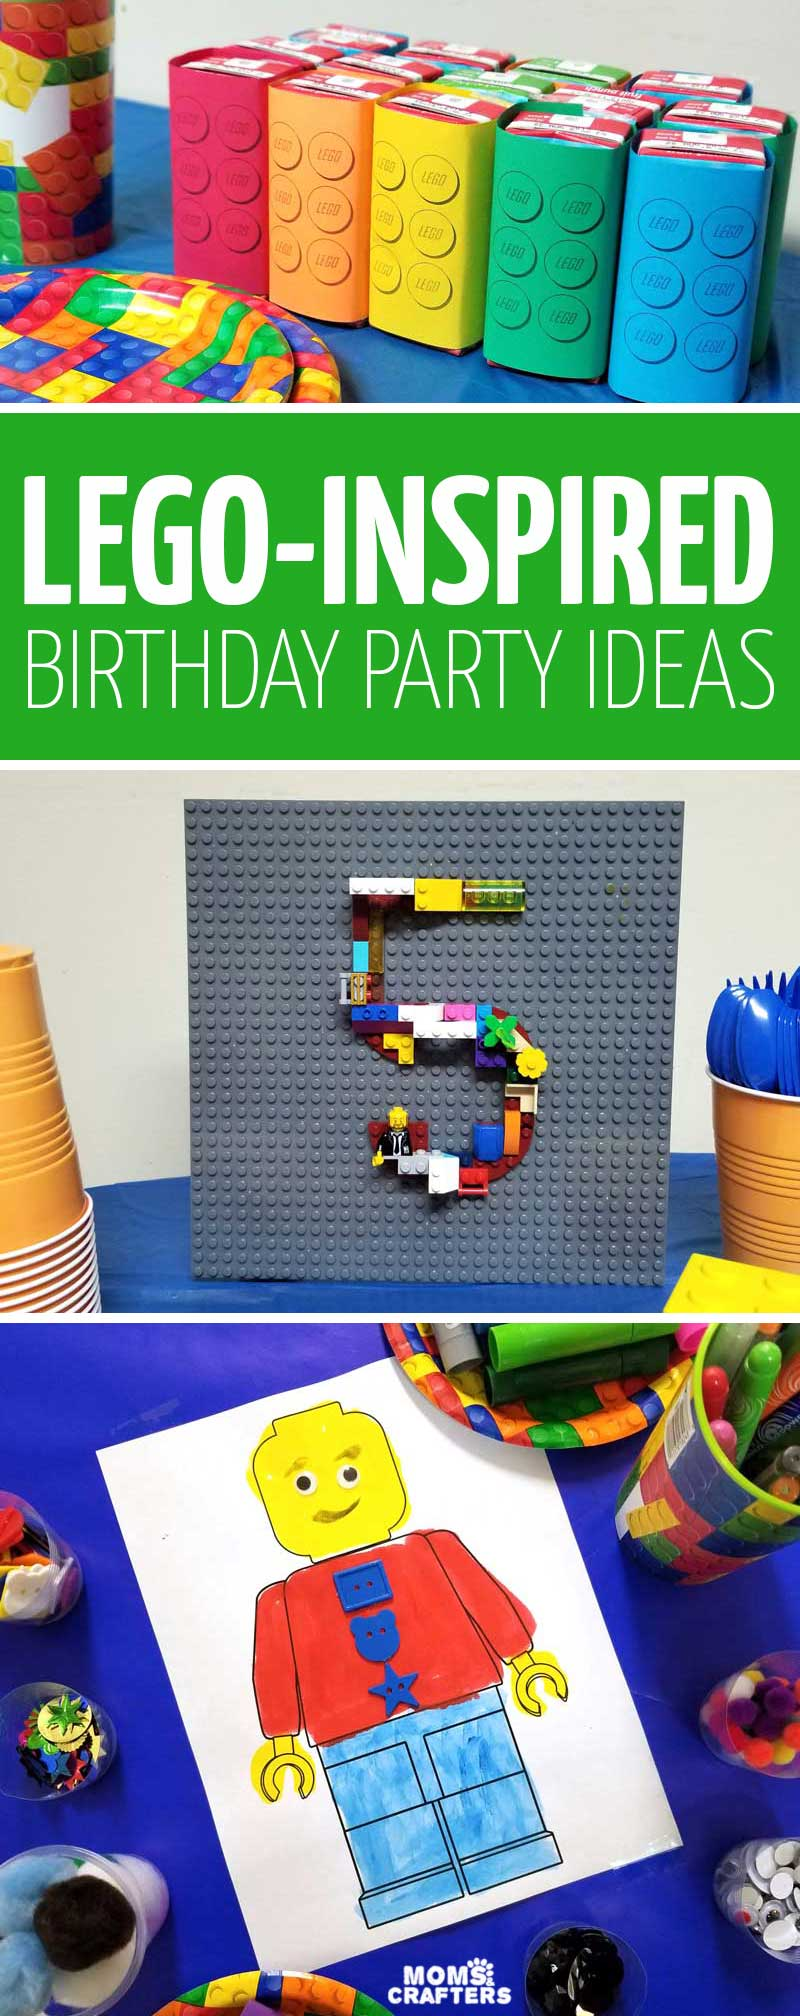 Click for the ultimate list of LEGO birthday party ideas - including brick themed party crafts, activities, foods, cakes, treat and favor boxes, and more!